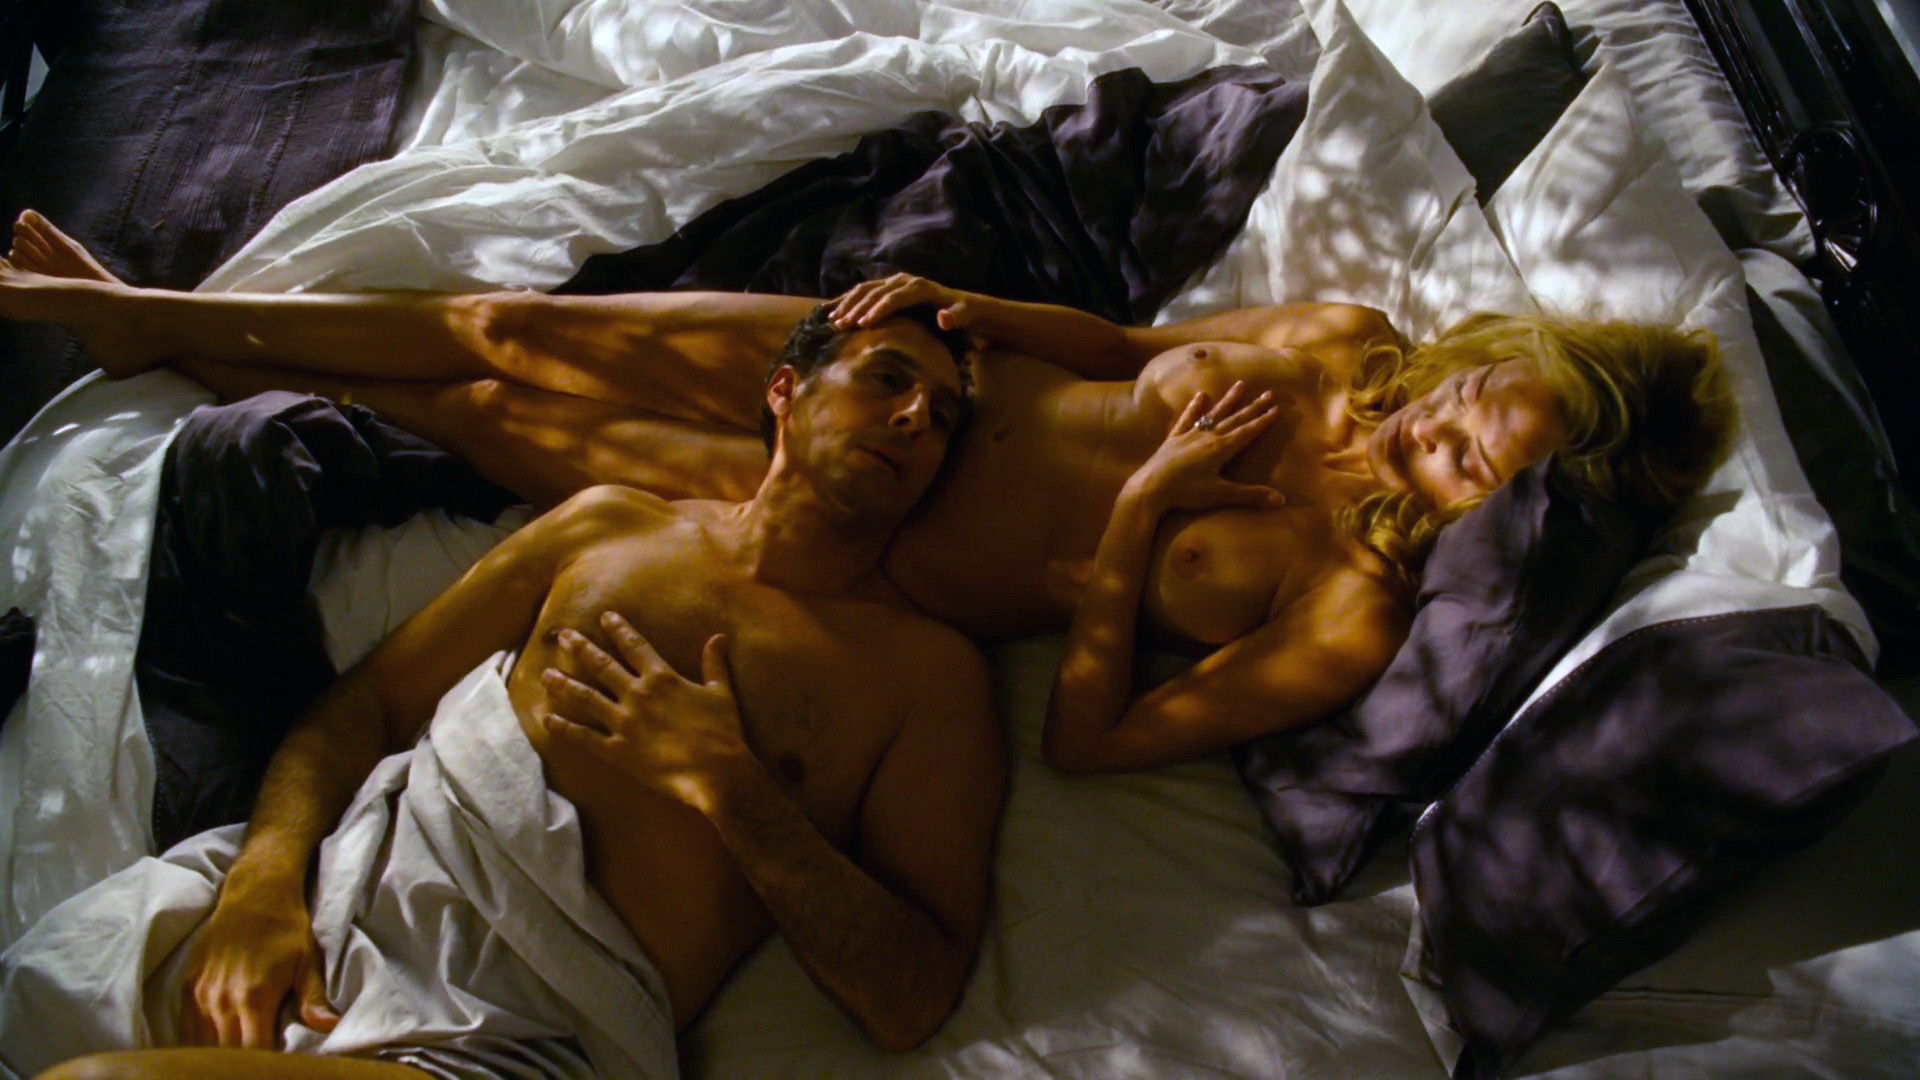 Half naked movie download women photography